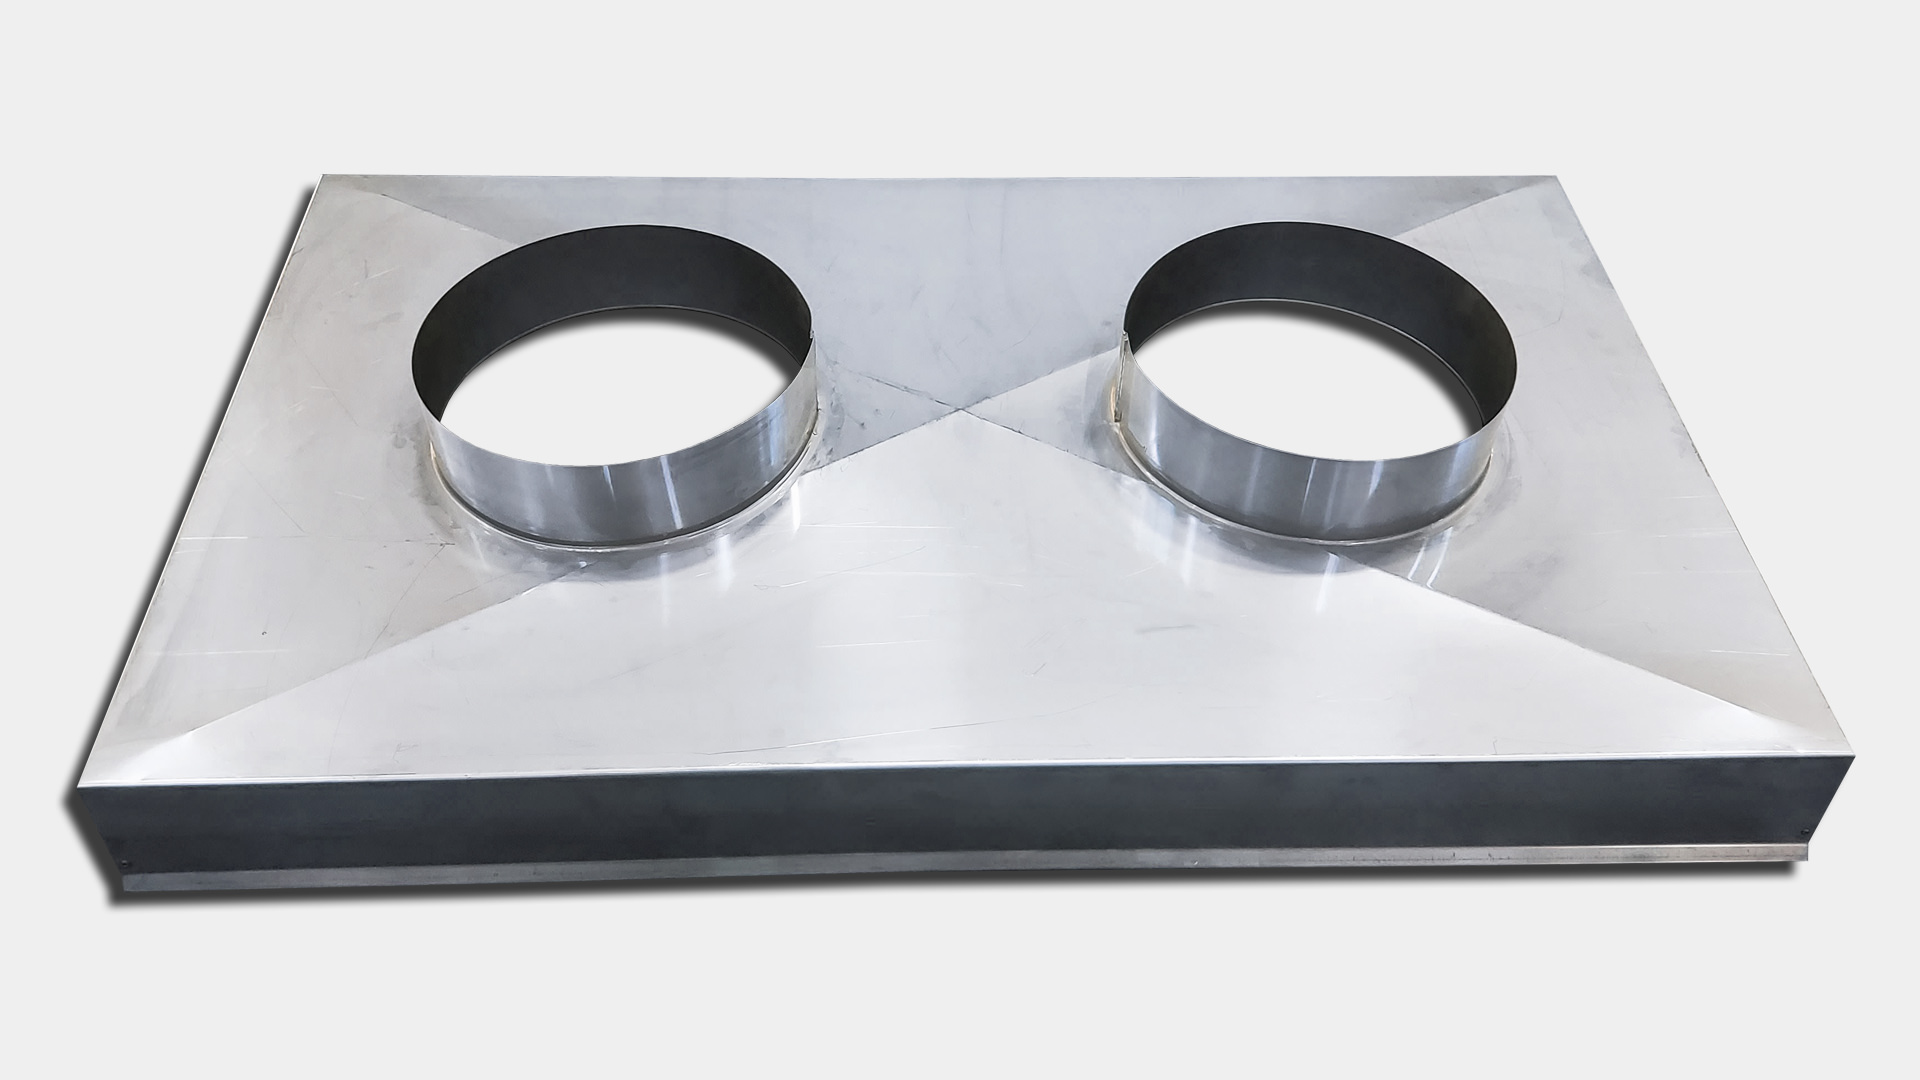 CC200 - Stainless steel economy chase cover with 2 flue holes